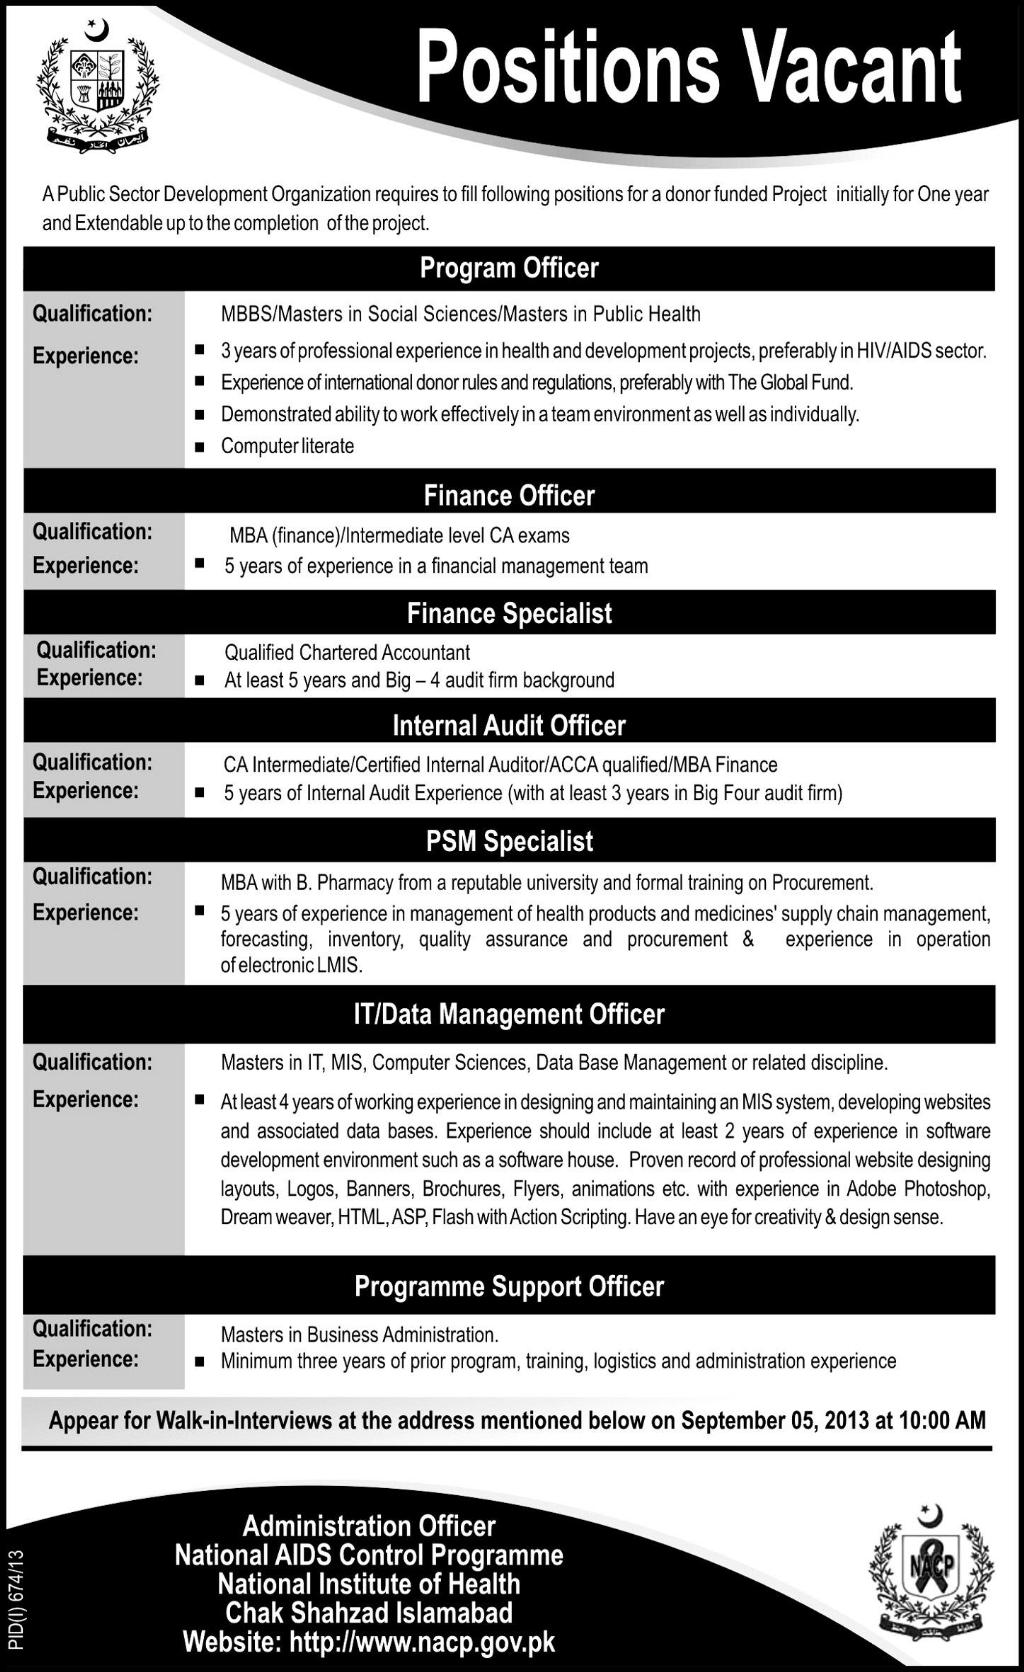 National AIDS Control Programme National Institute of Health Jobs Required Islamabad